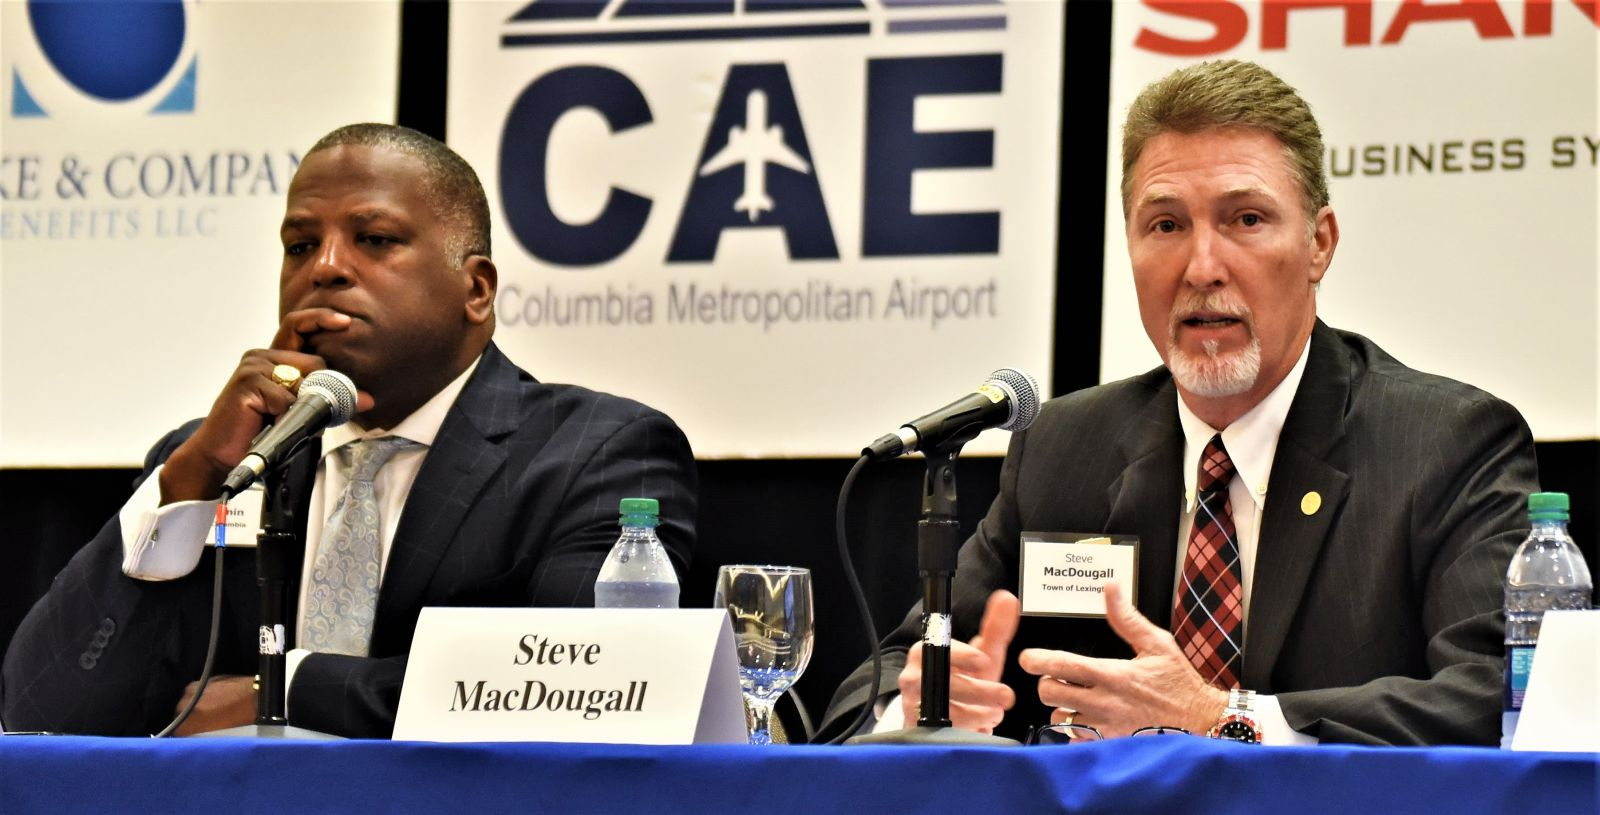 Columbia Mayor Steve Benjamin (left) and Lexington Mayor Steve MacDougall each spoke about cybersecurity during a Power Breakfast hosted by the Columbia Regional Business Report held this morning at the Doubletree by Hilton. (Photo/Chuck Crumbo)